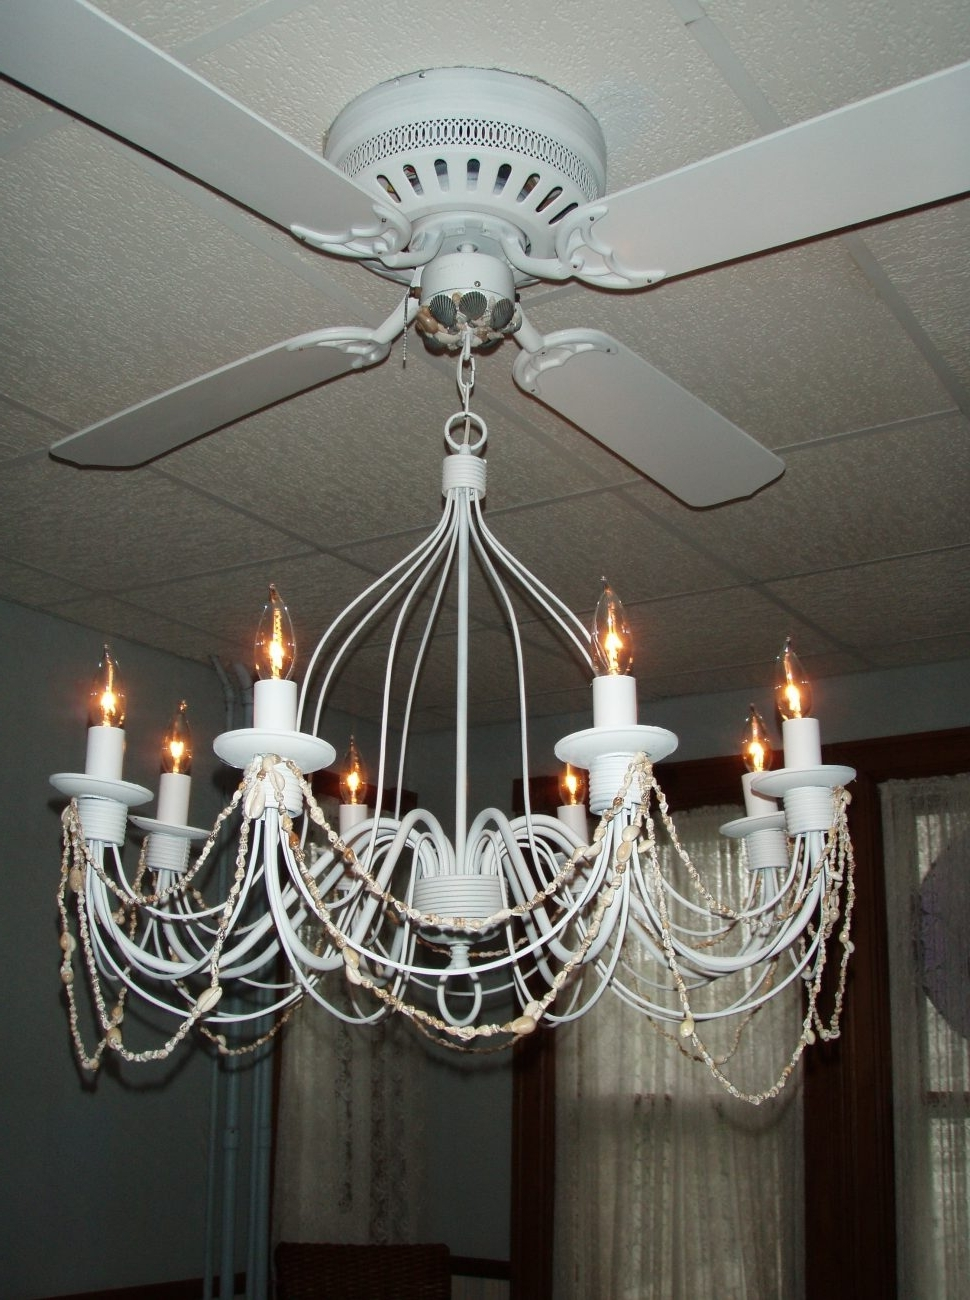 Ceiling Fans : Excellent Ceiling Fan Chandelier Elegant Fans With Regarding Fashionable Chandelier Light Fixture For Ceiling Fan (View 2 of 15)